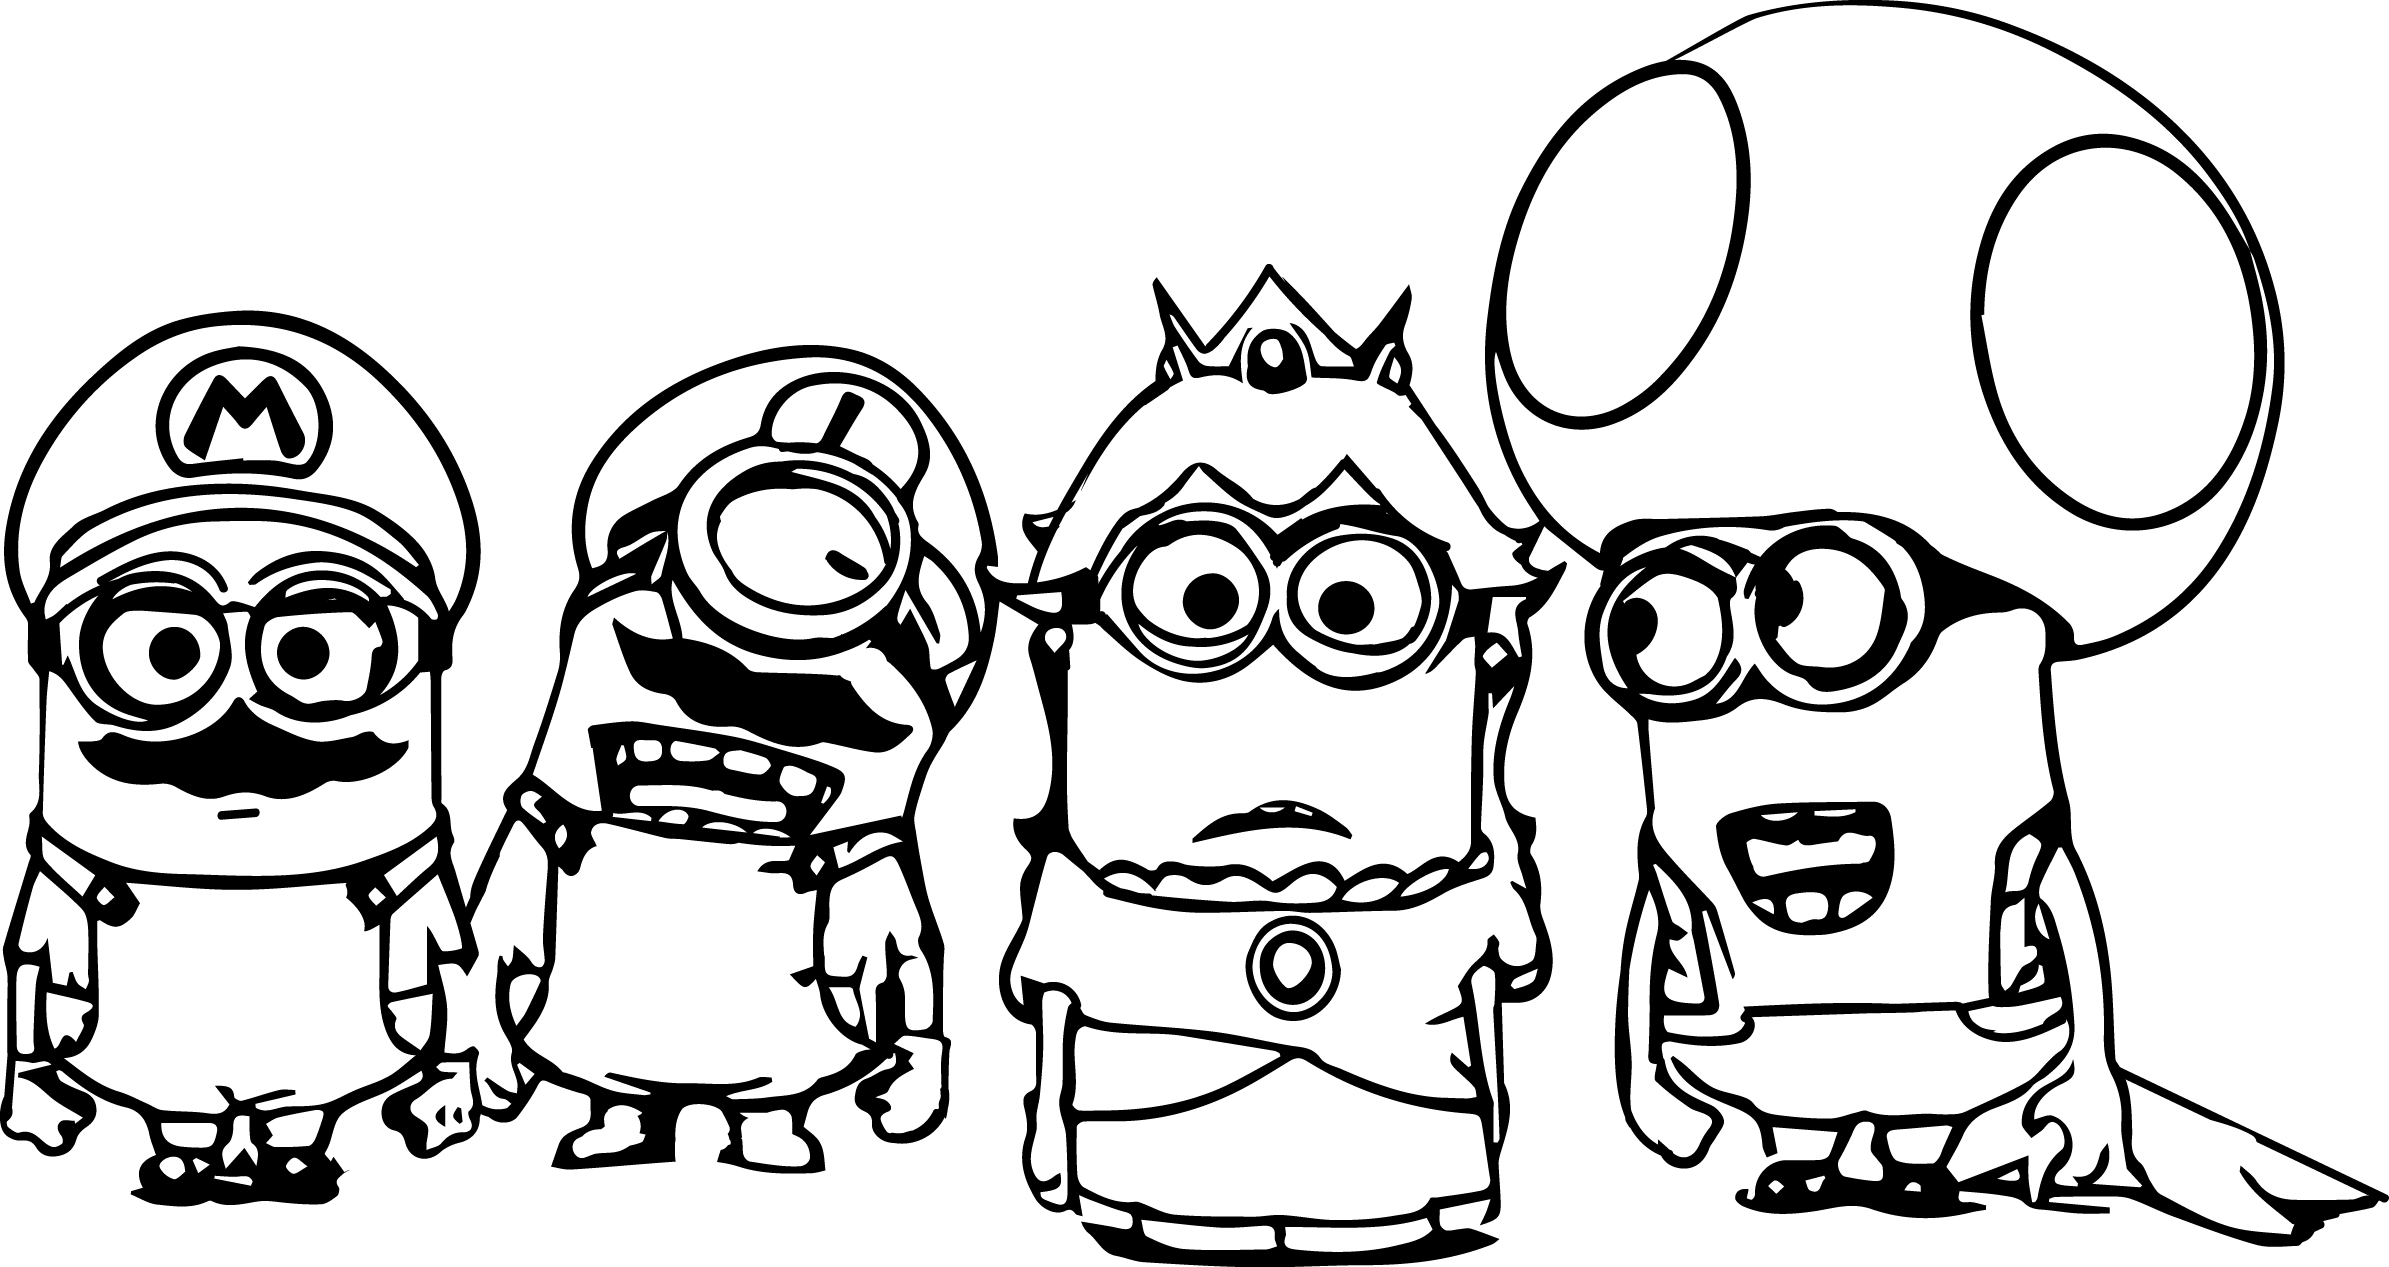 coloring minion pages cute coloring pages best coloring pages for kids coloring pages minion